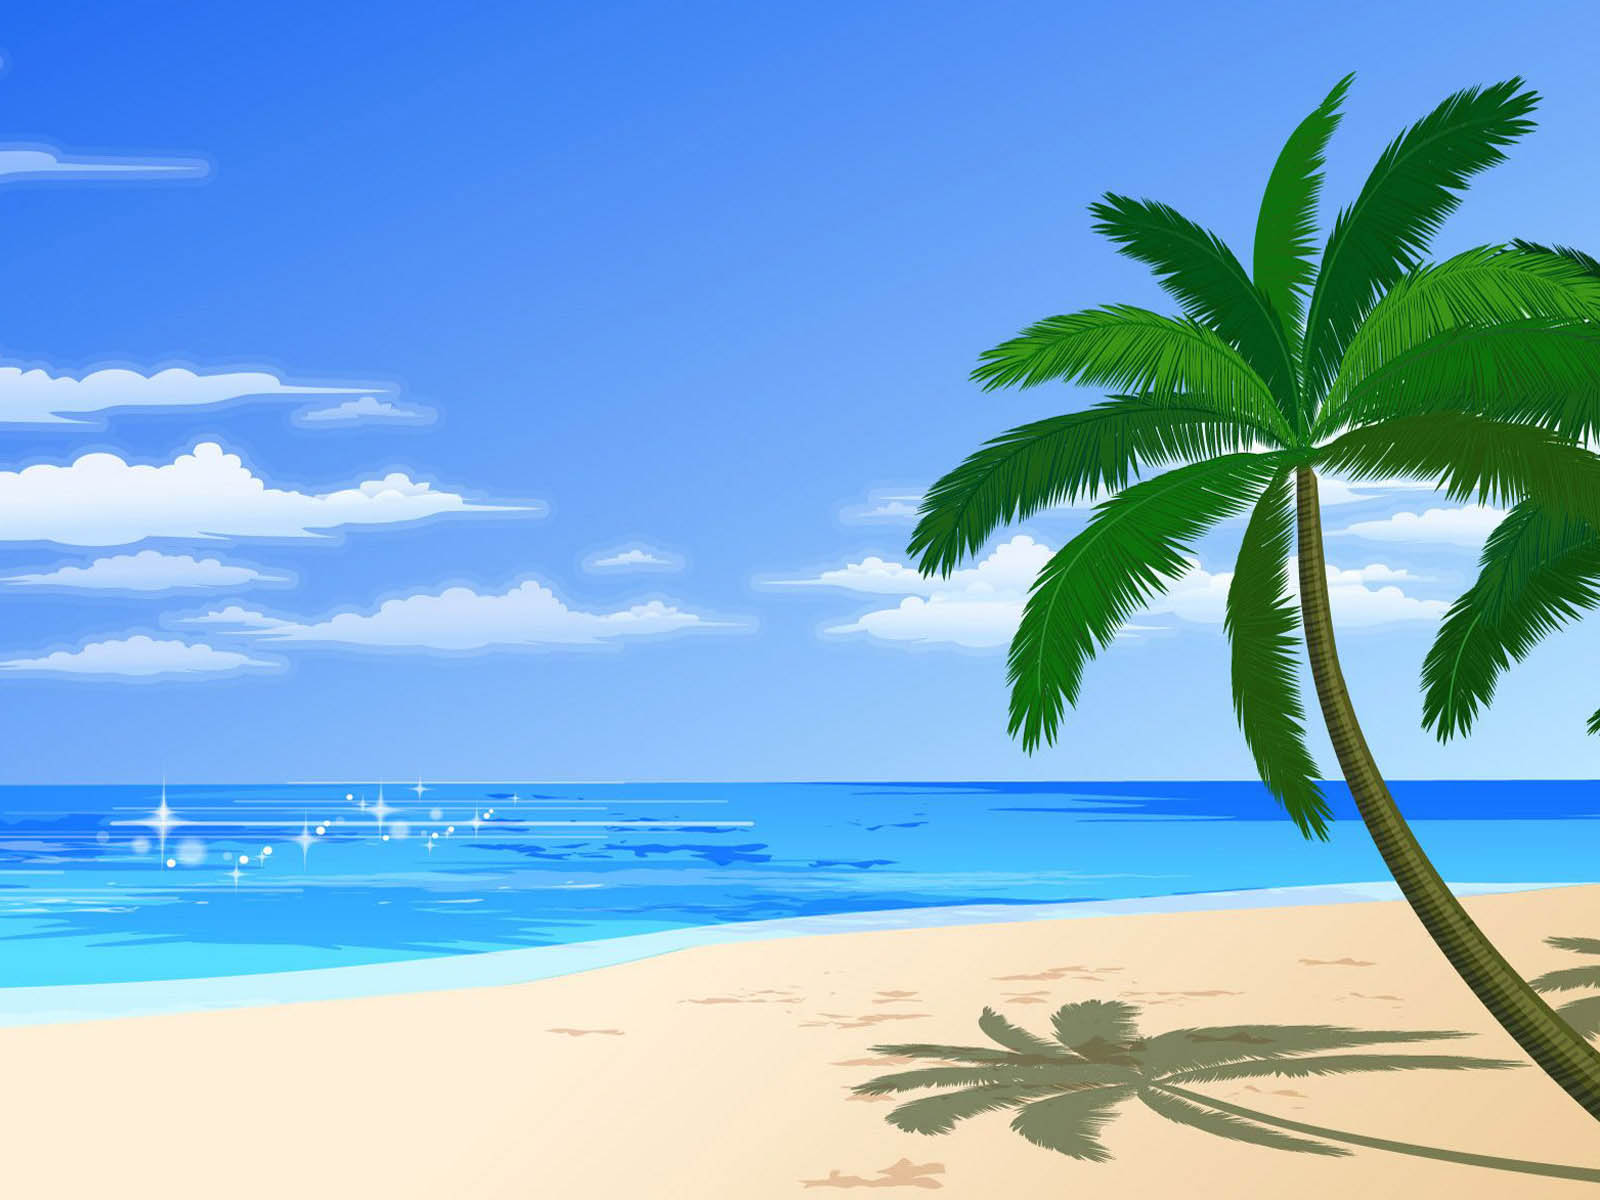 hight resolution of beach chair clipart free clip art images image 5